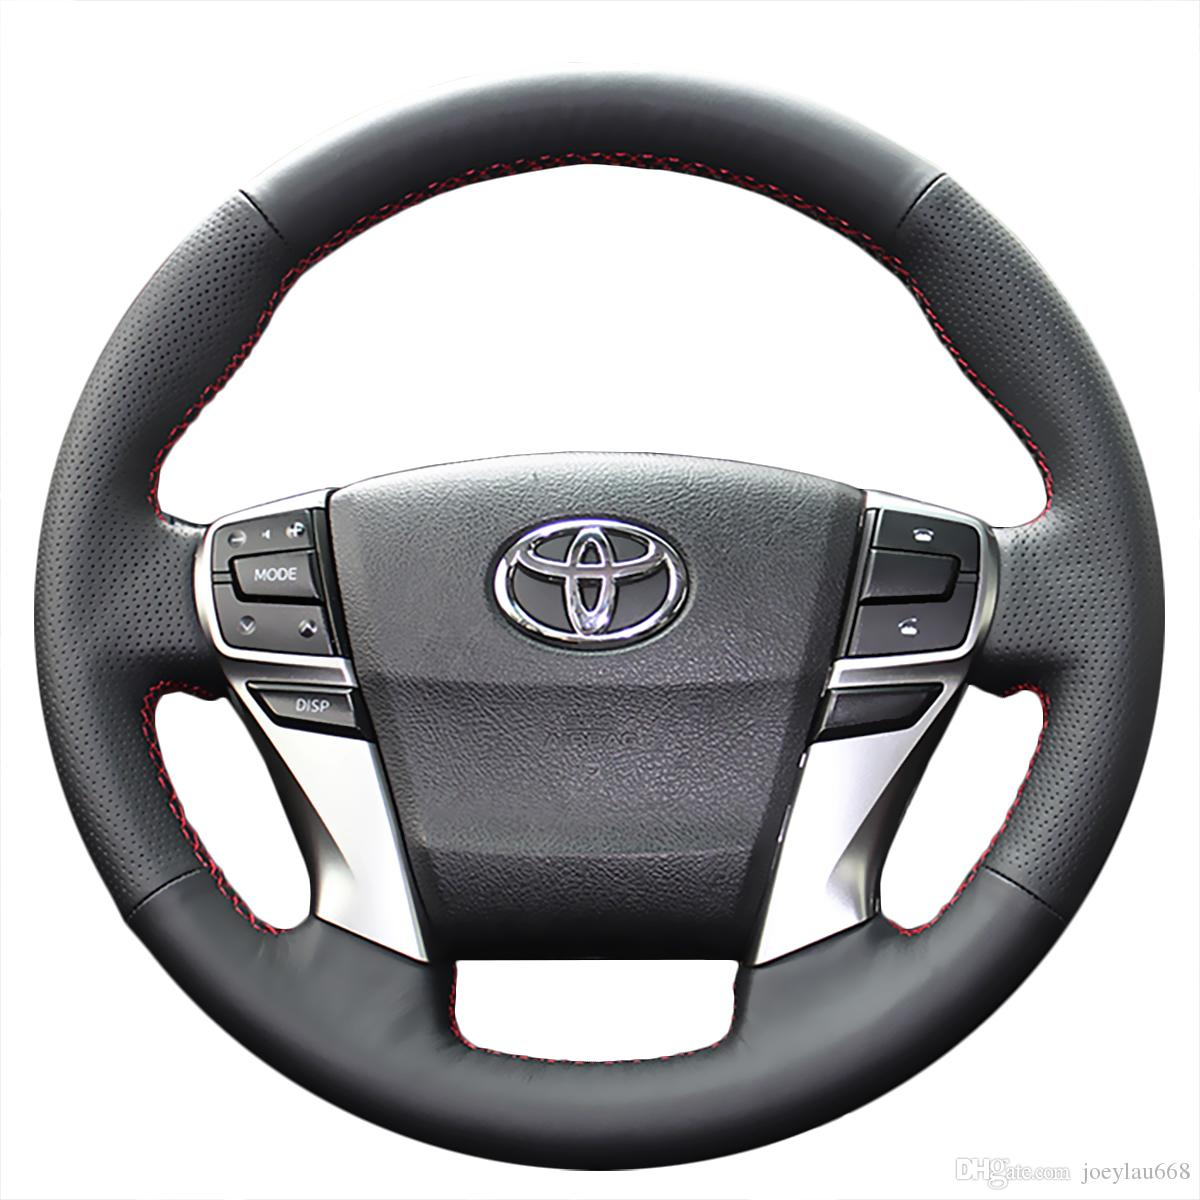 hight resolution of steering wheel cover case for toyota mark x reiz 2013 new model genuine leather diy hand stitch car styling canada 2019 from joeylau668 cad 39 89 dhgate